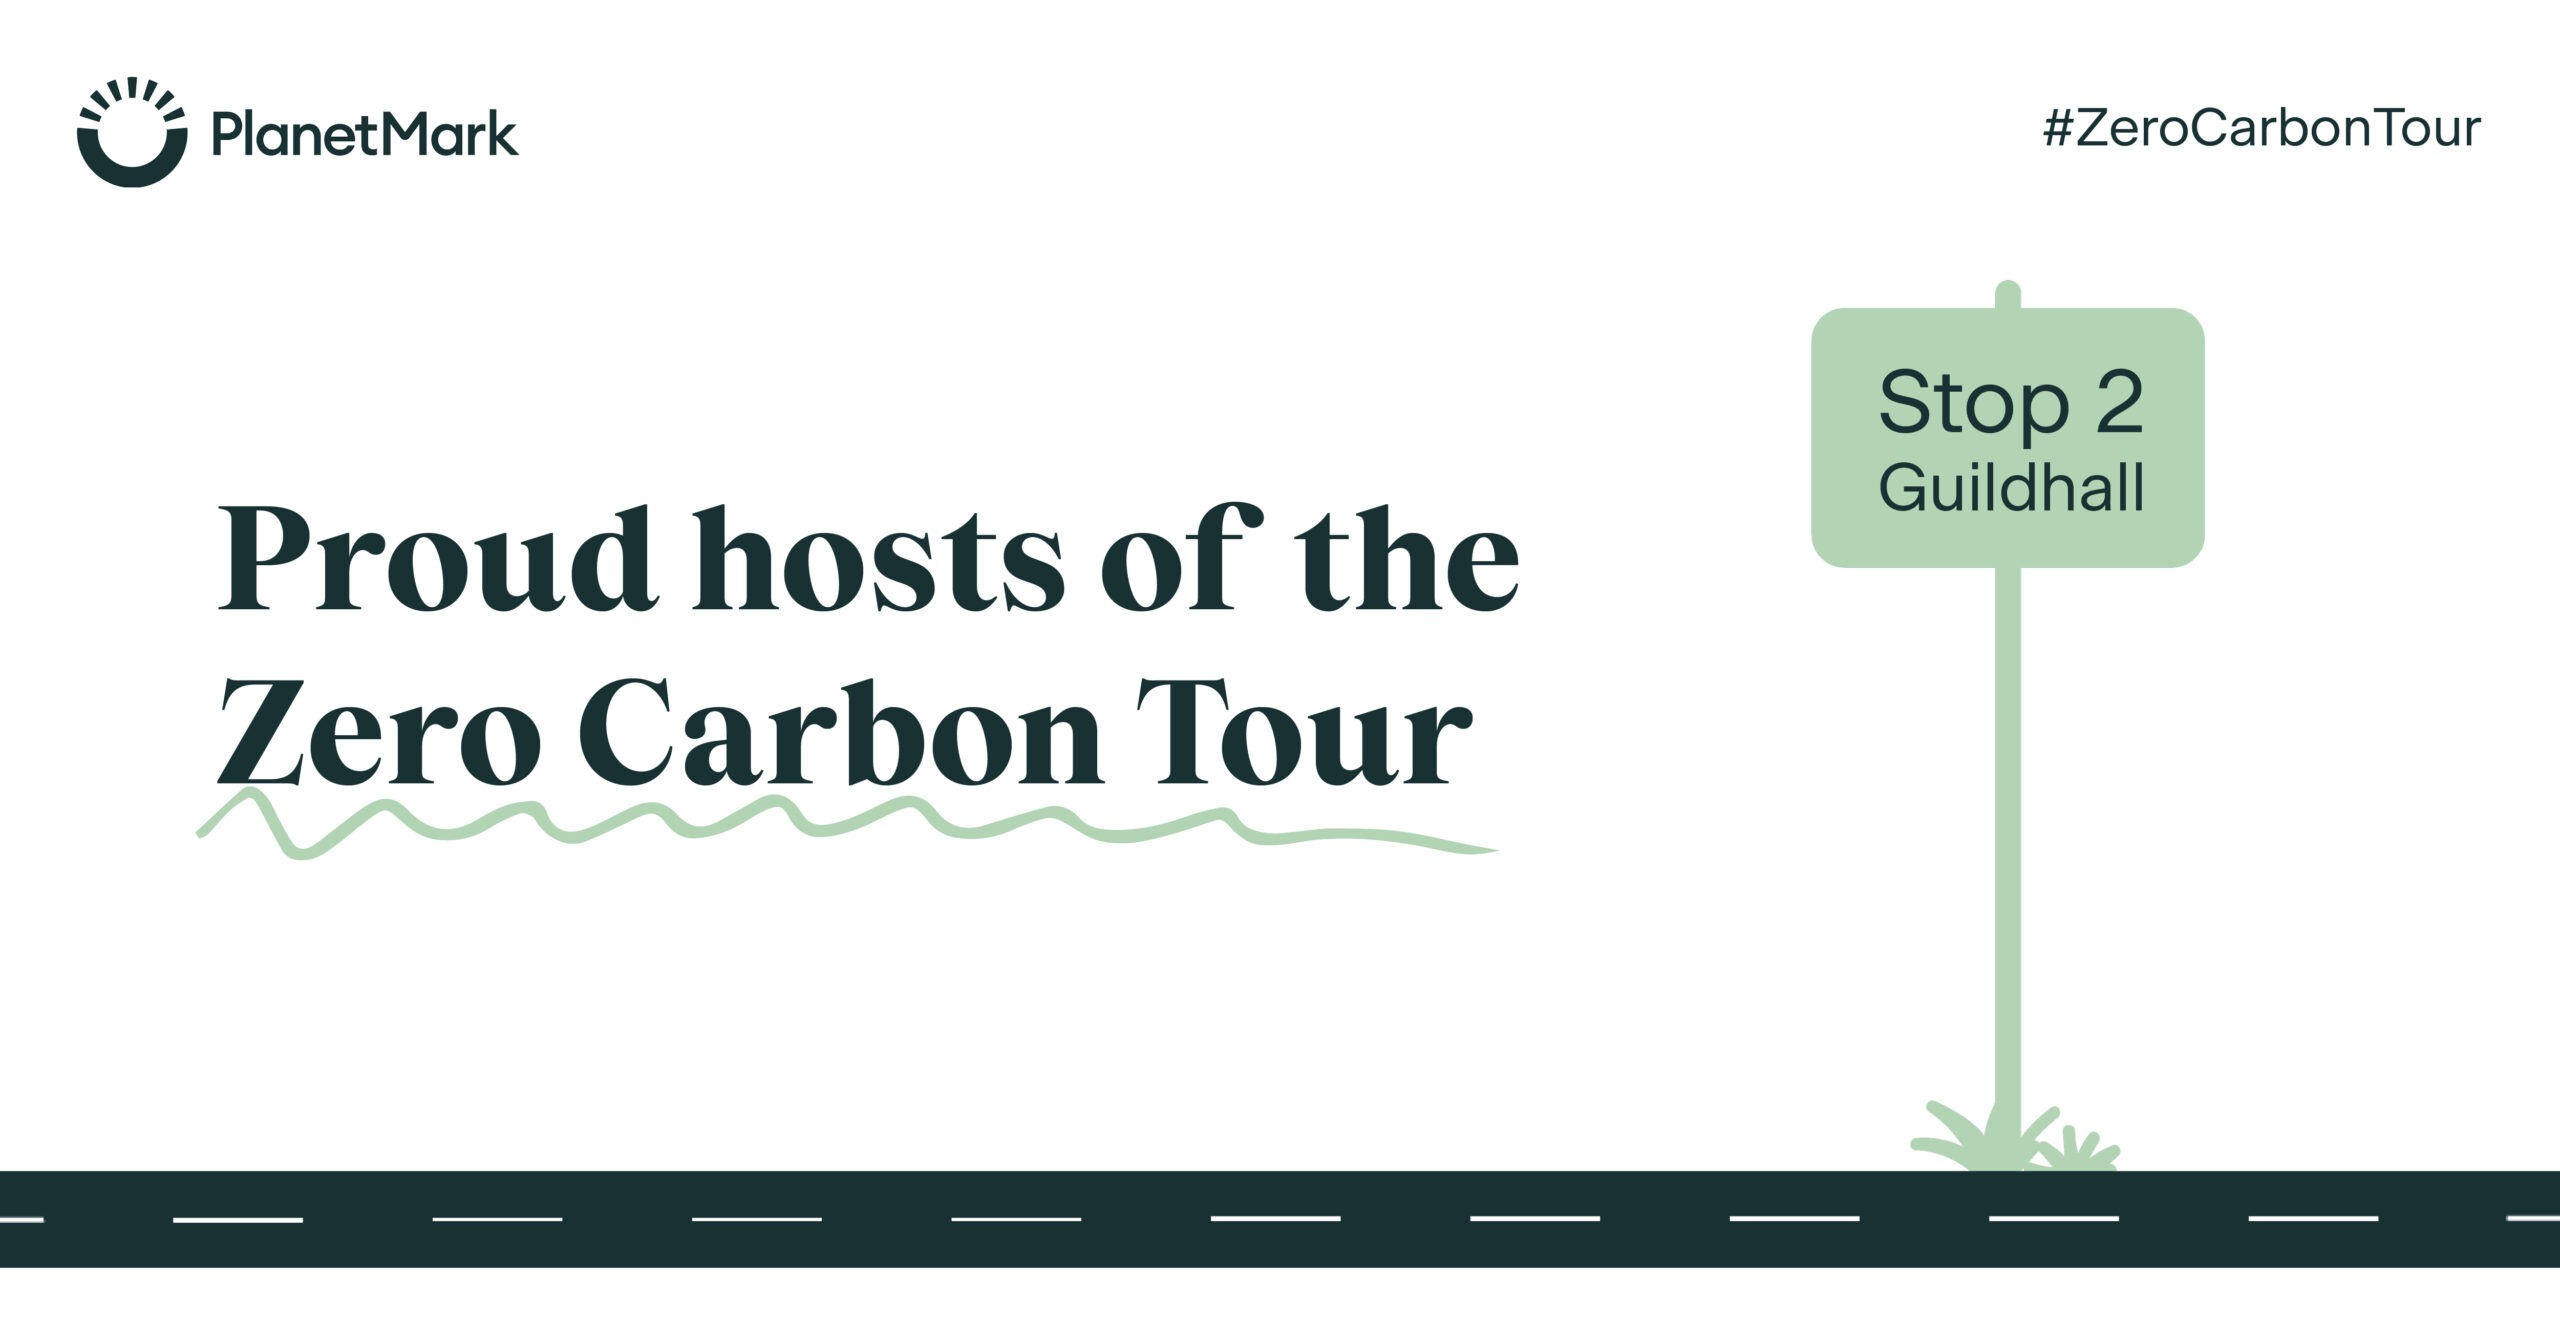 Heart of the City hosts Planet Mark's second stop on Net Zero Carbon Tour